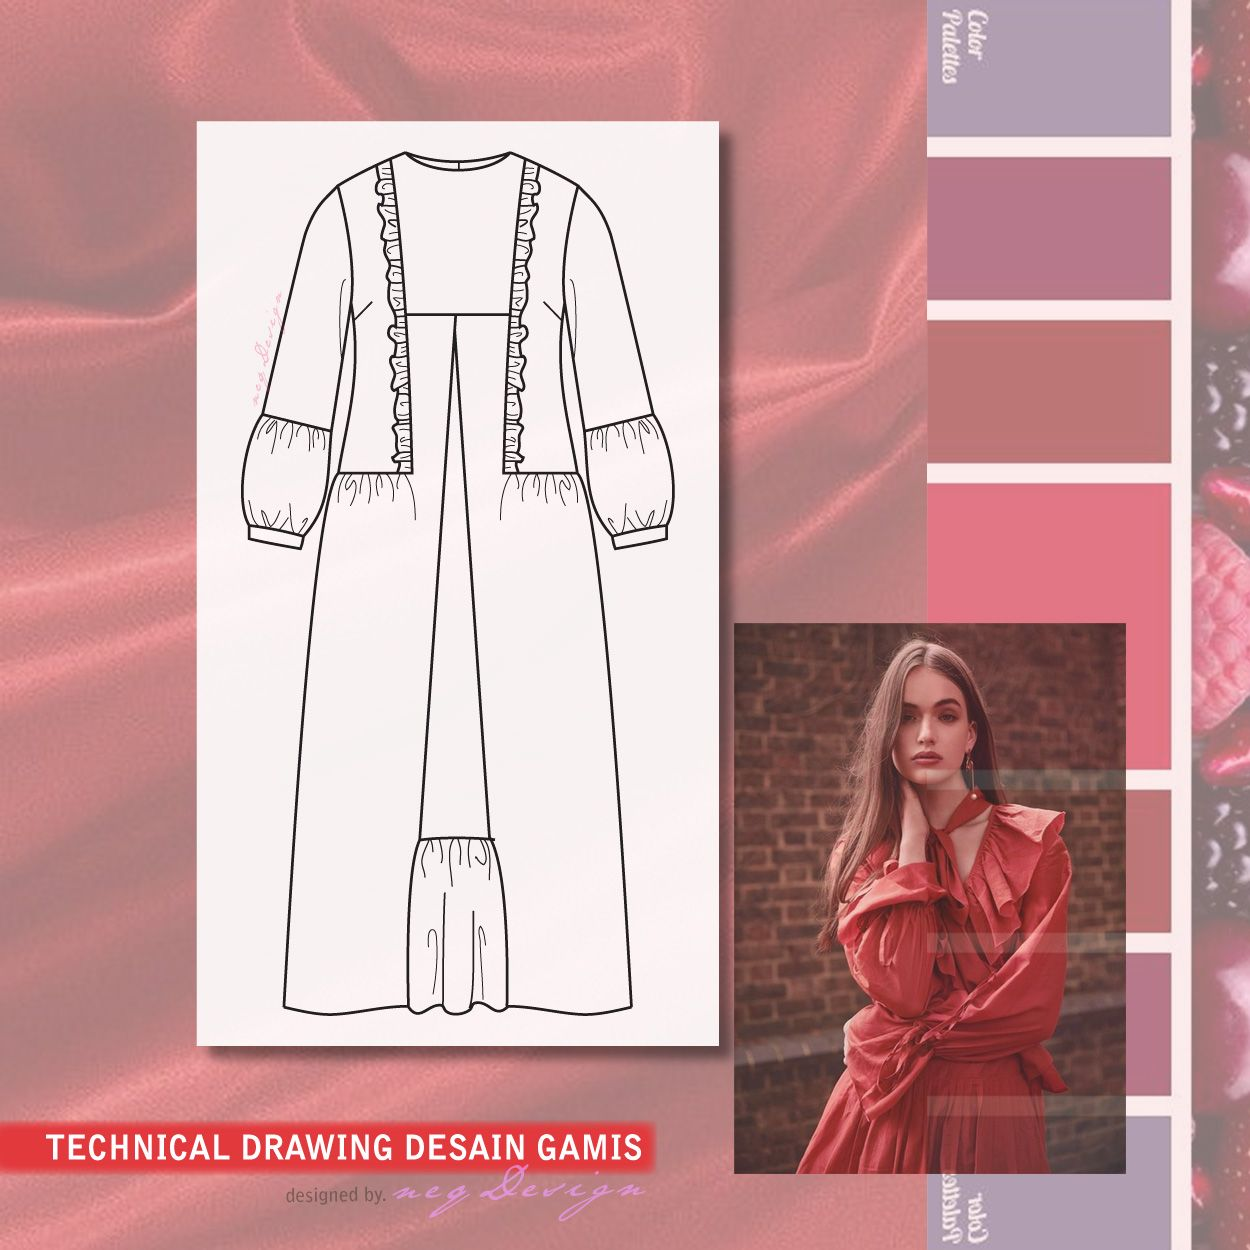 Desain Baju Gamis in 12  Design, Instagram photo, Fashion design